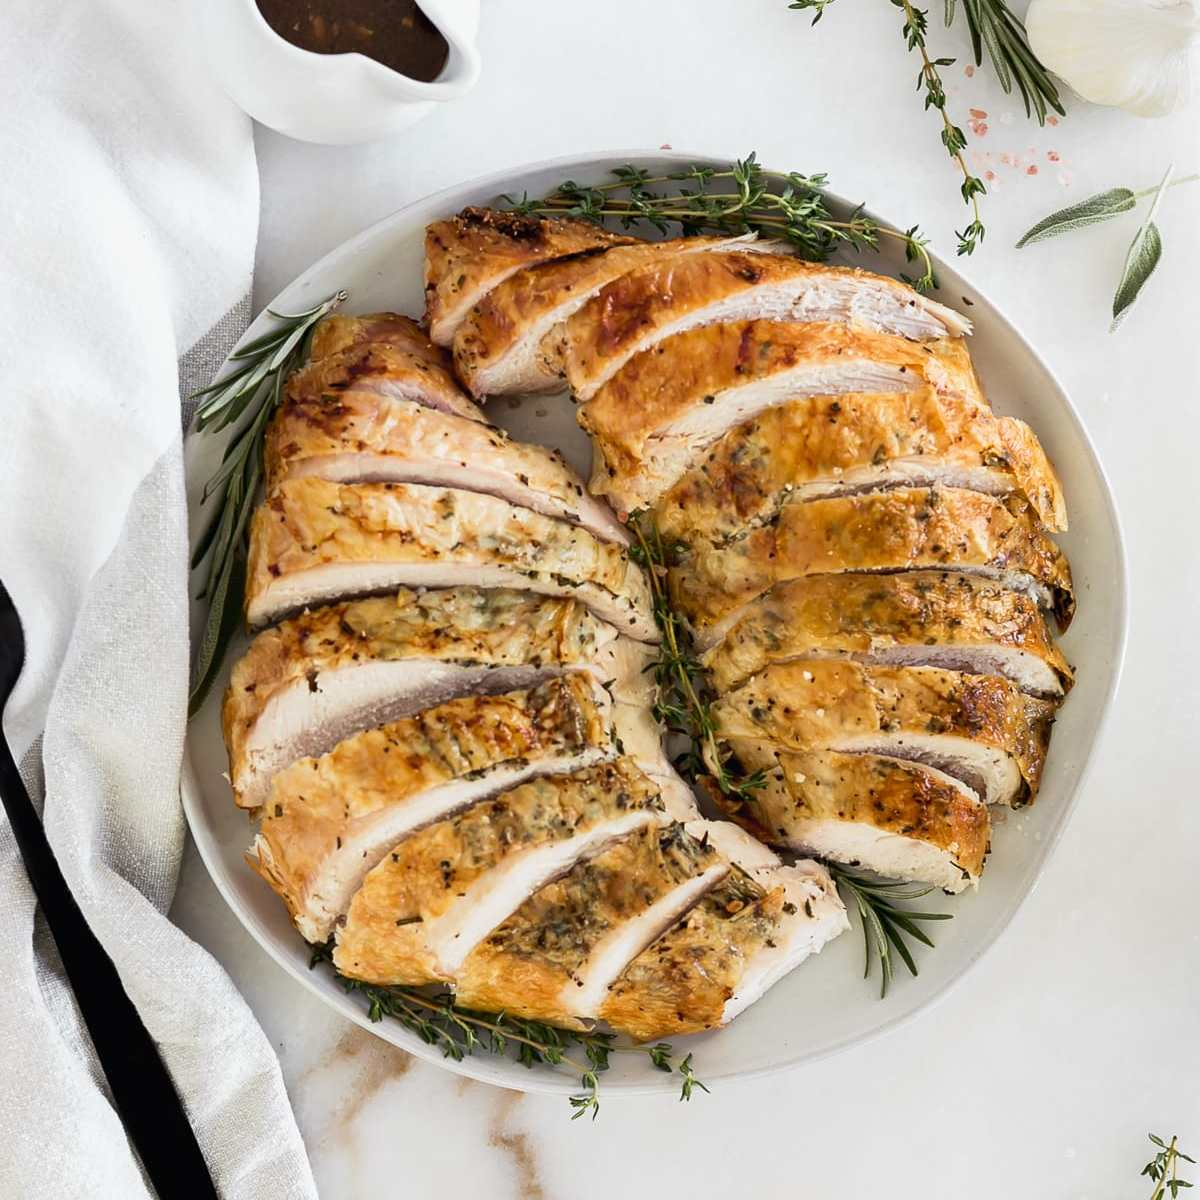 overhead view of sliced roasted bone in turkey breast on a white plate surrounded by fresh herbs.